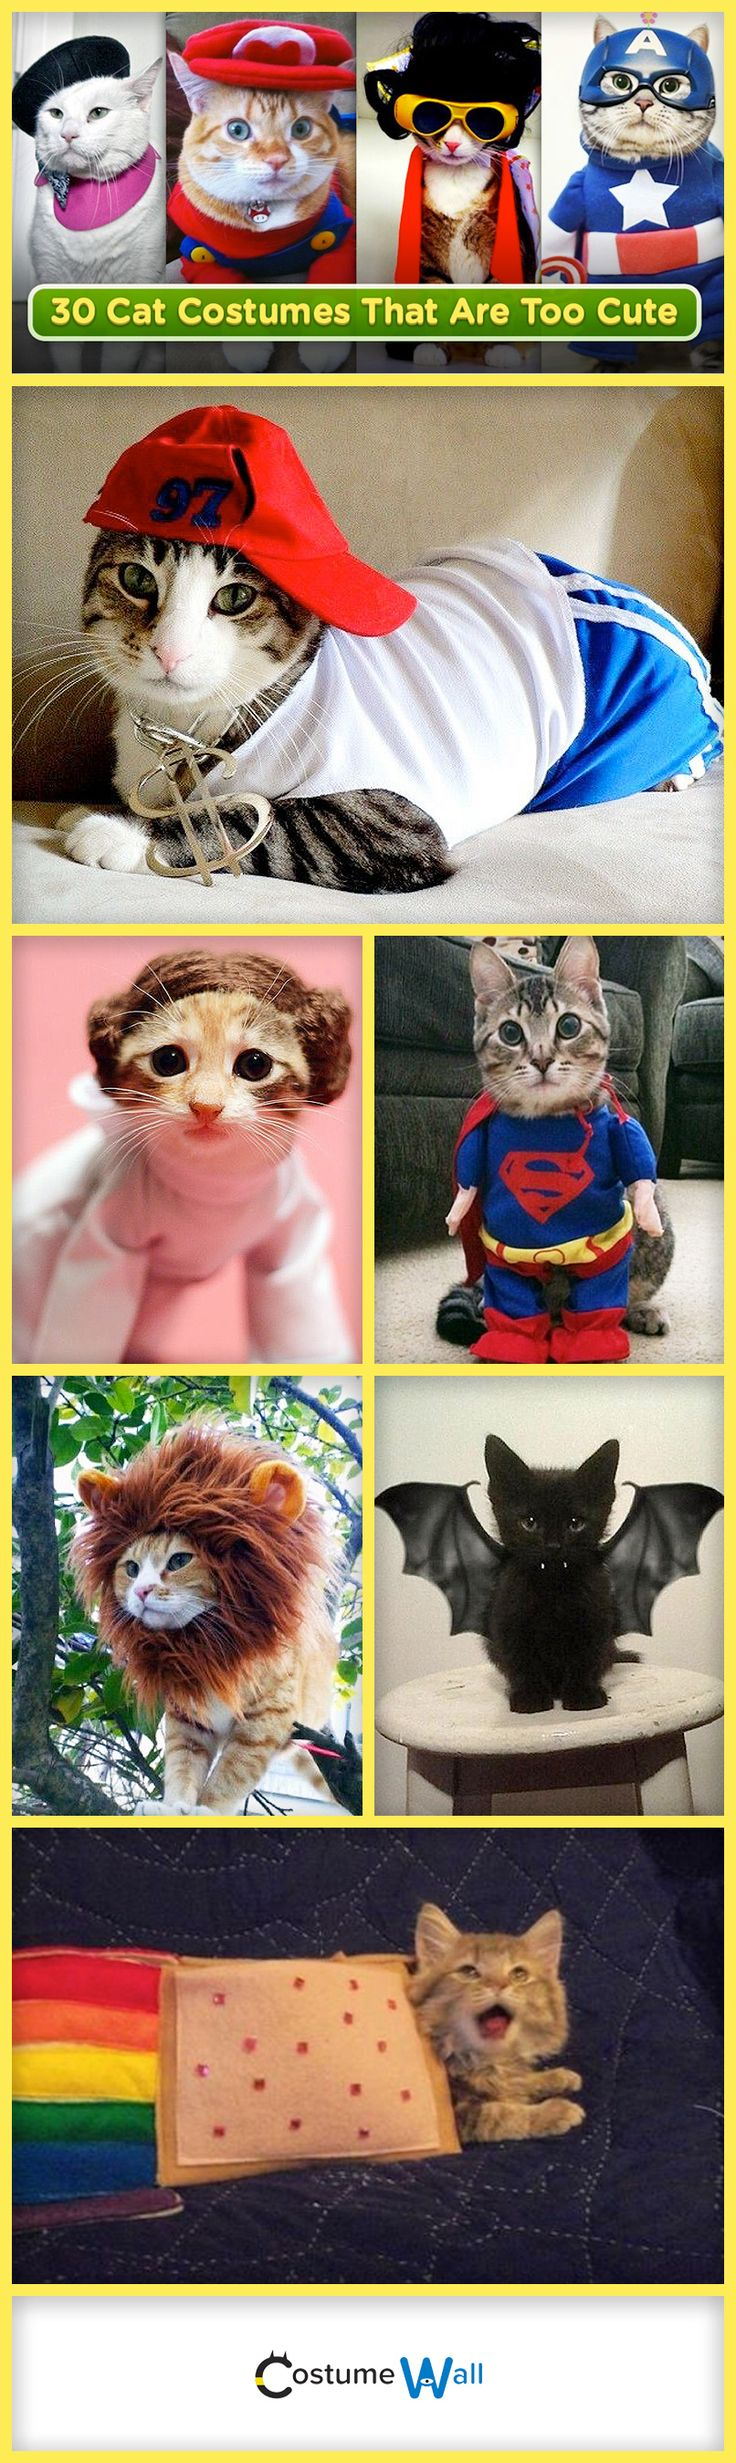 Kittens need to dress up on Halloween too! We found 30 of the very best cat costumes to help you dress up your feline this fall.